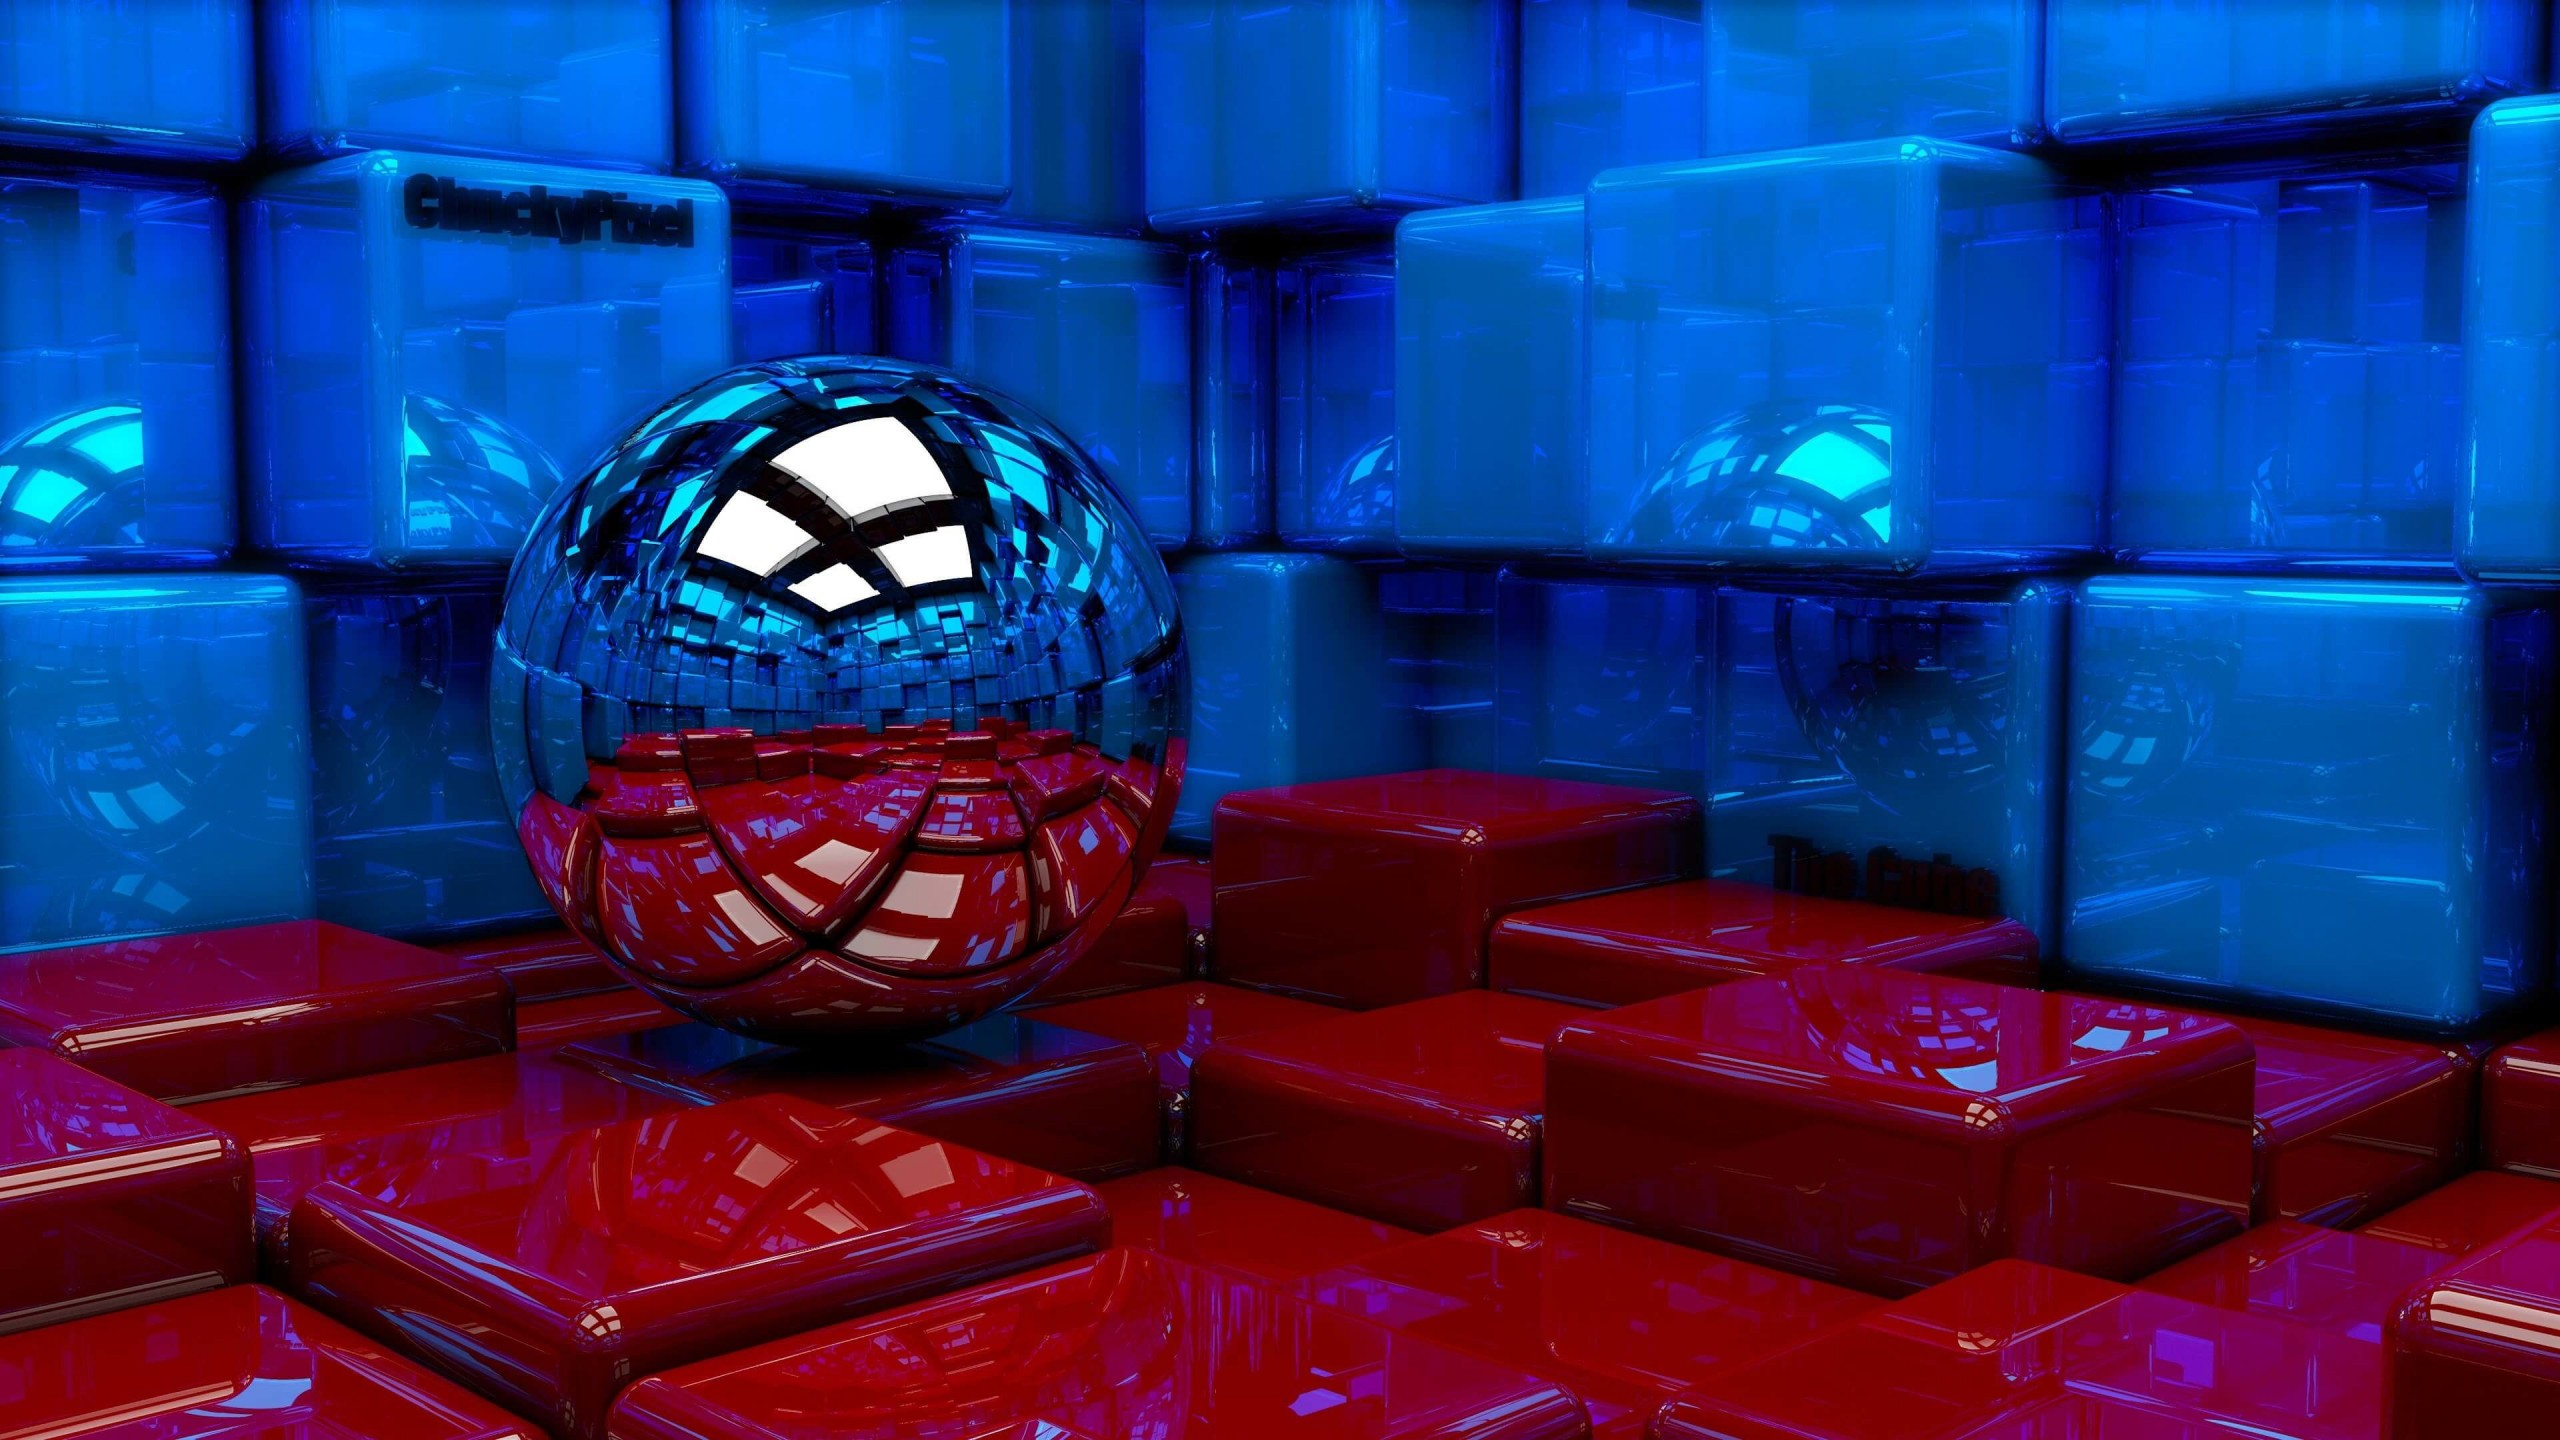 Metallic Sphere Reflecting The Cube Room Wallpaper for Desktop 2560x1440